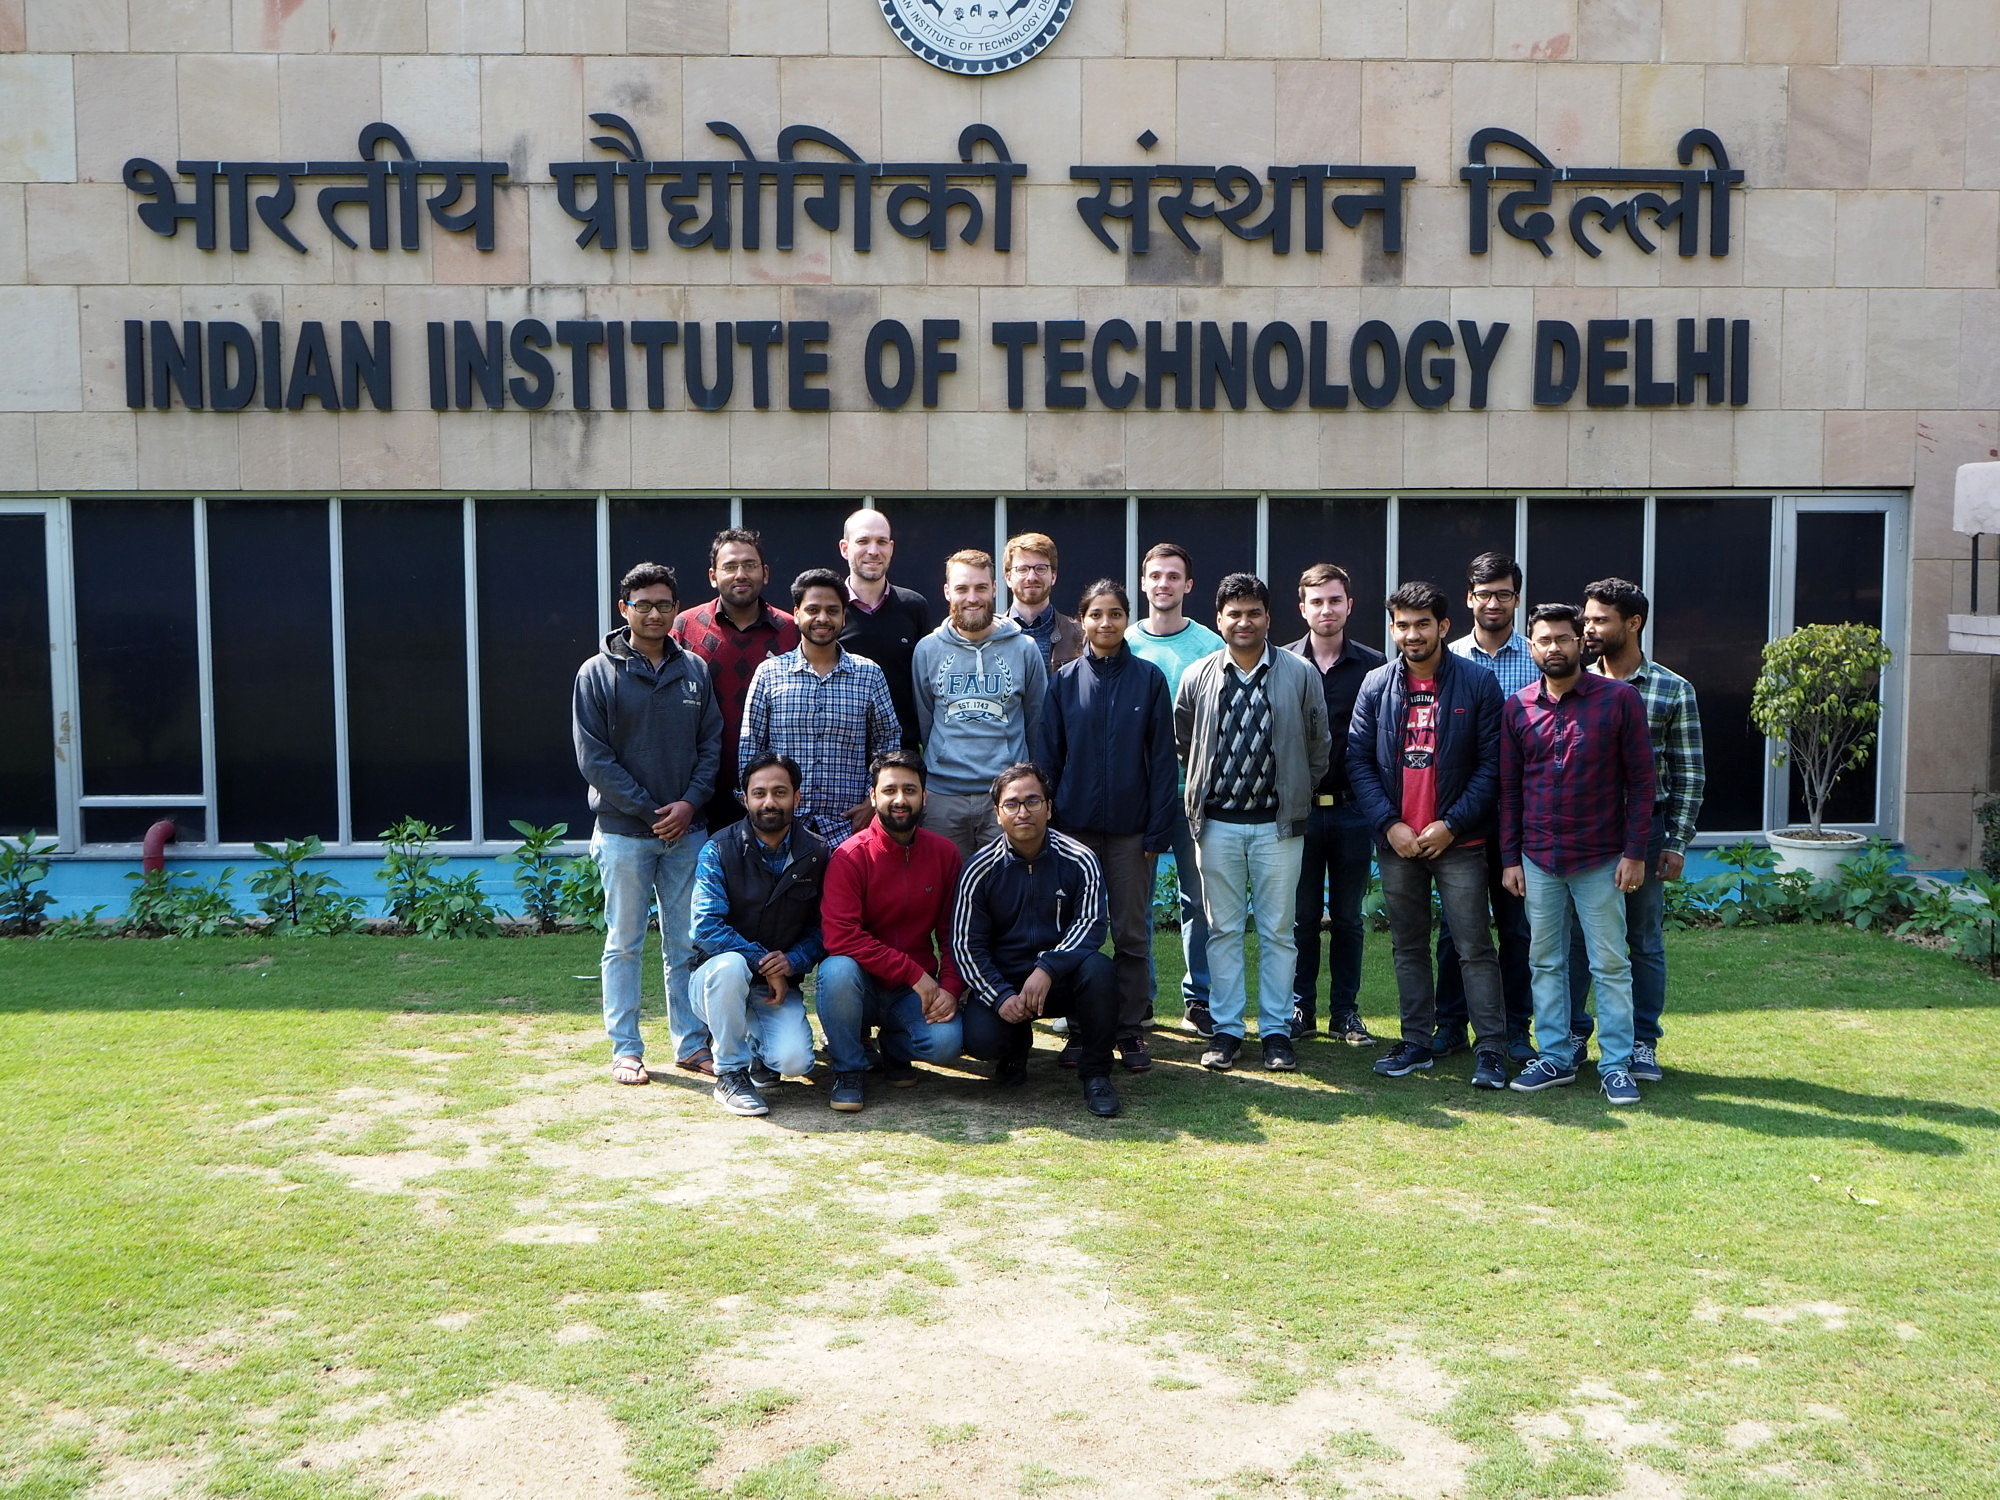 Group photo of seventeen researchers at the Indian Institute of Technology Delhi.